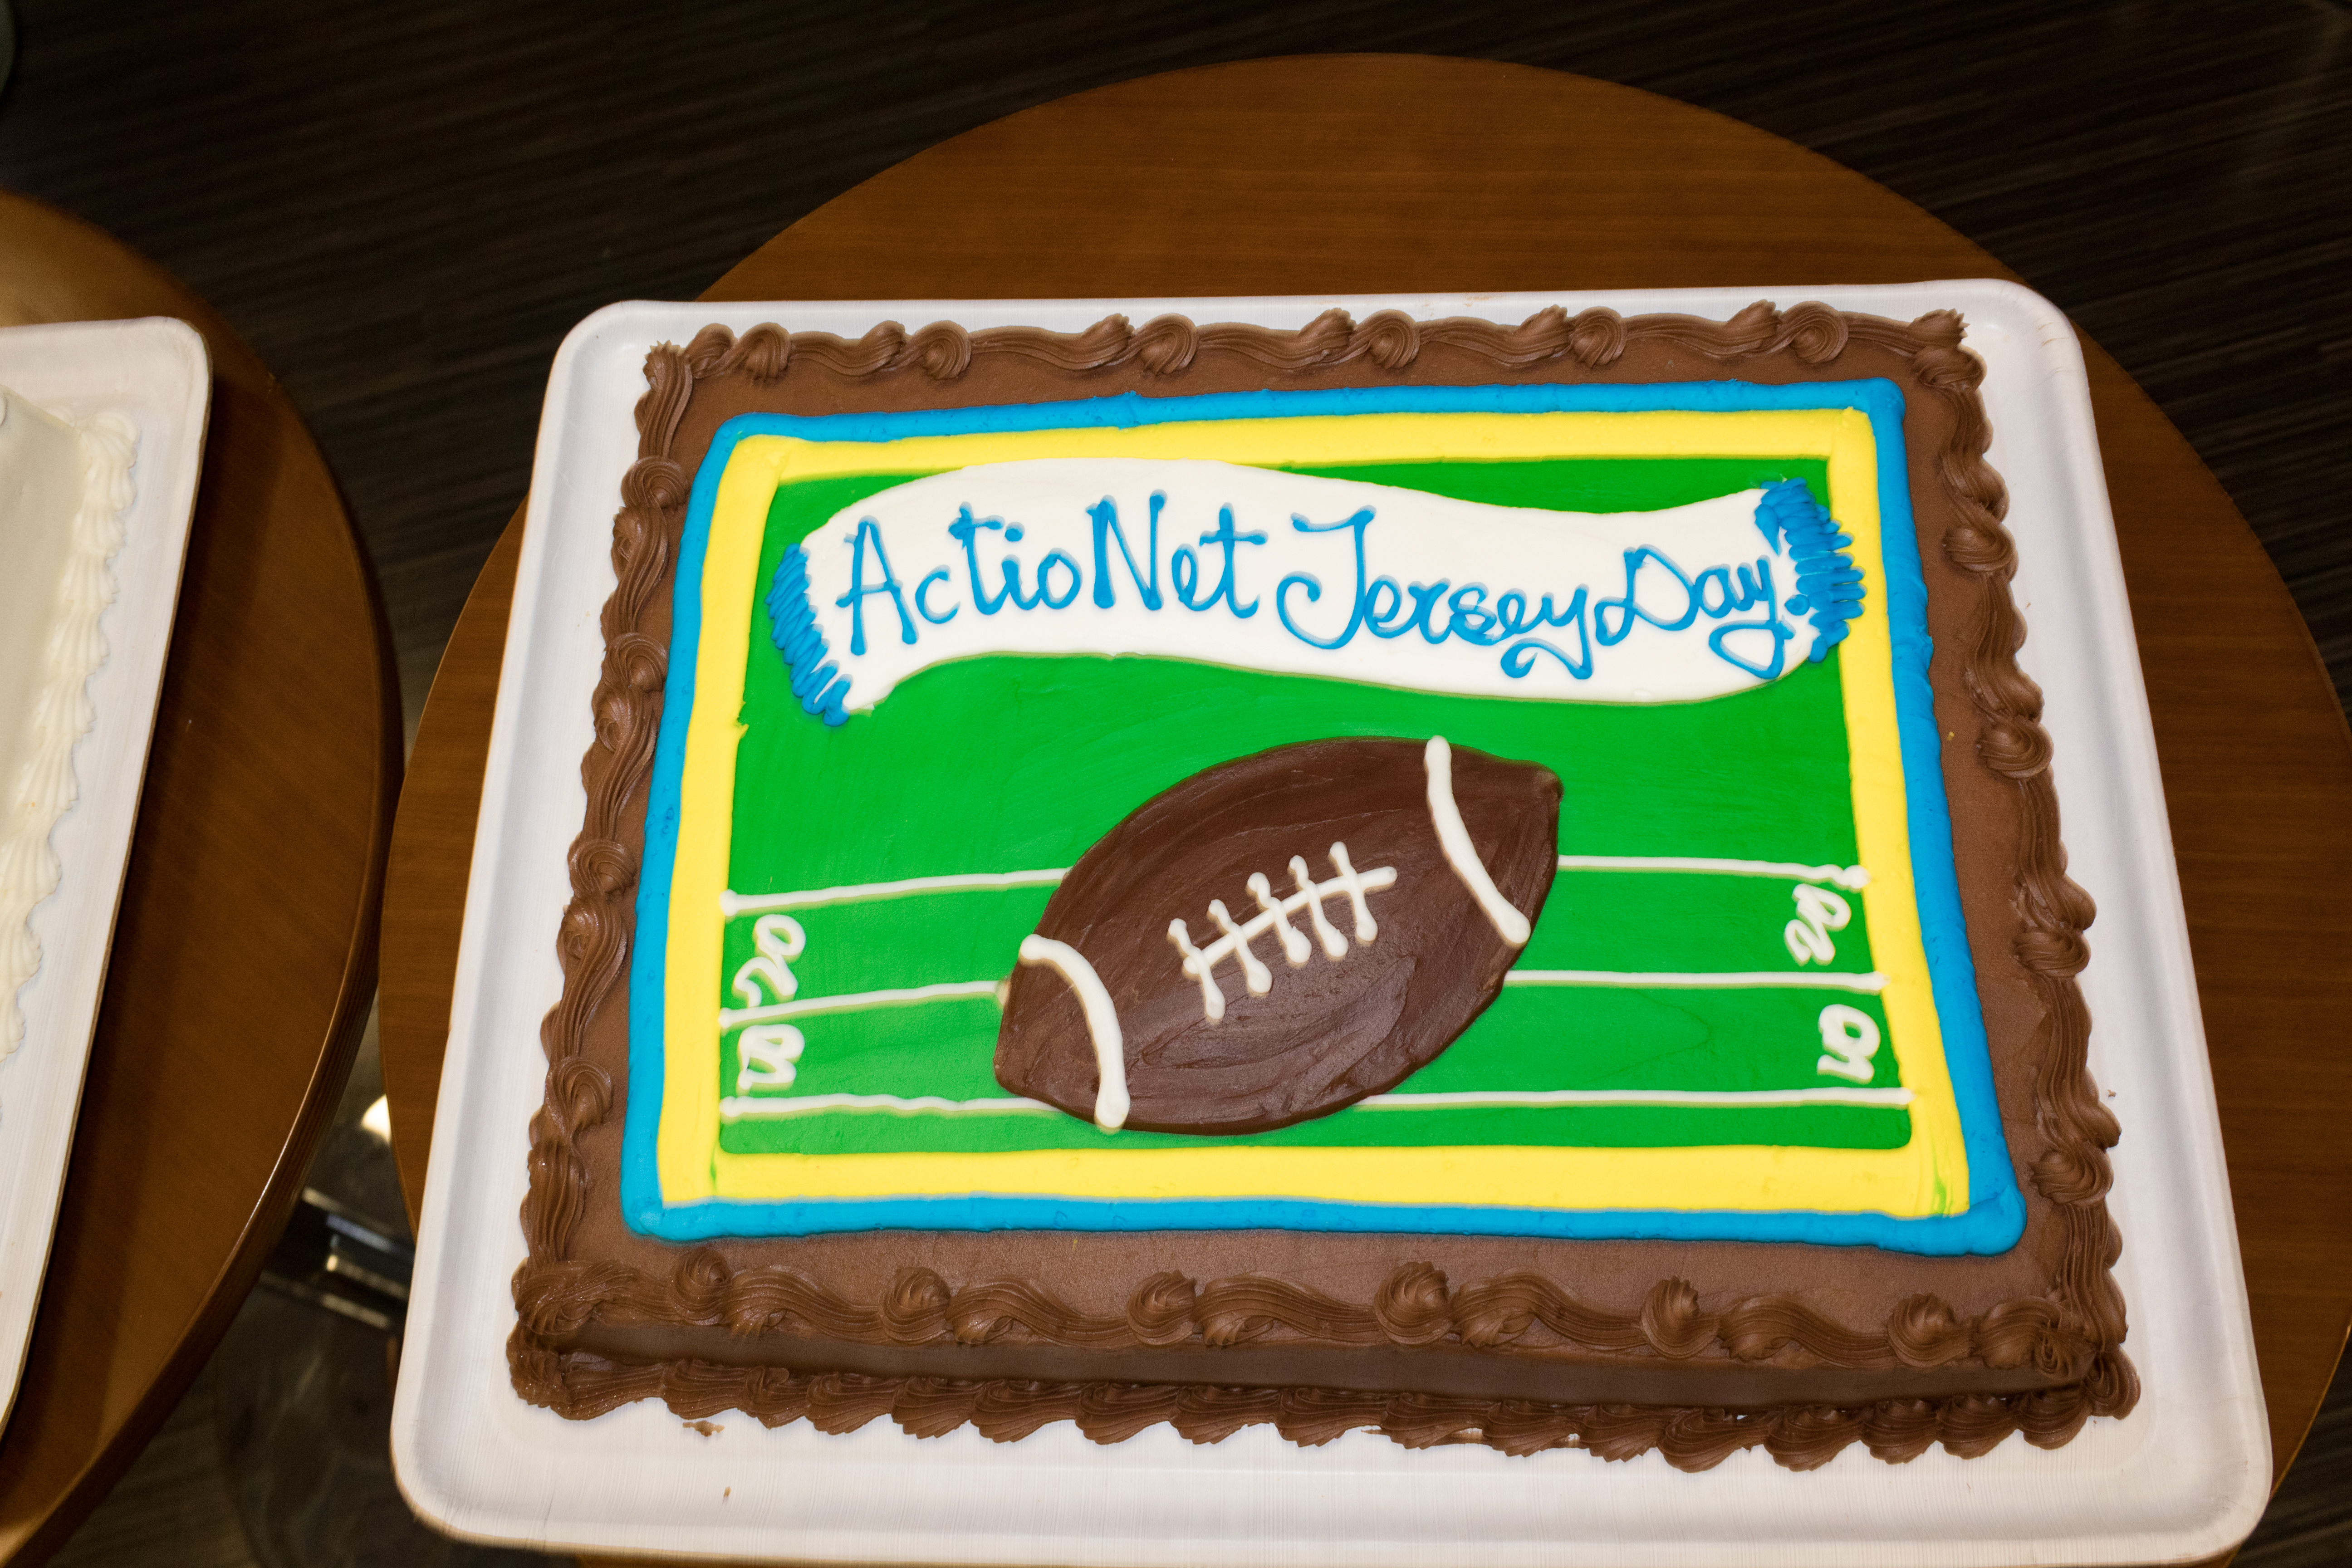 Football themed cake for the themed event